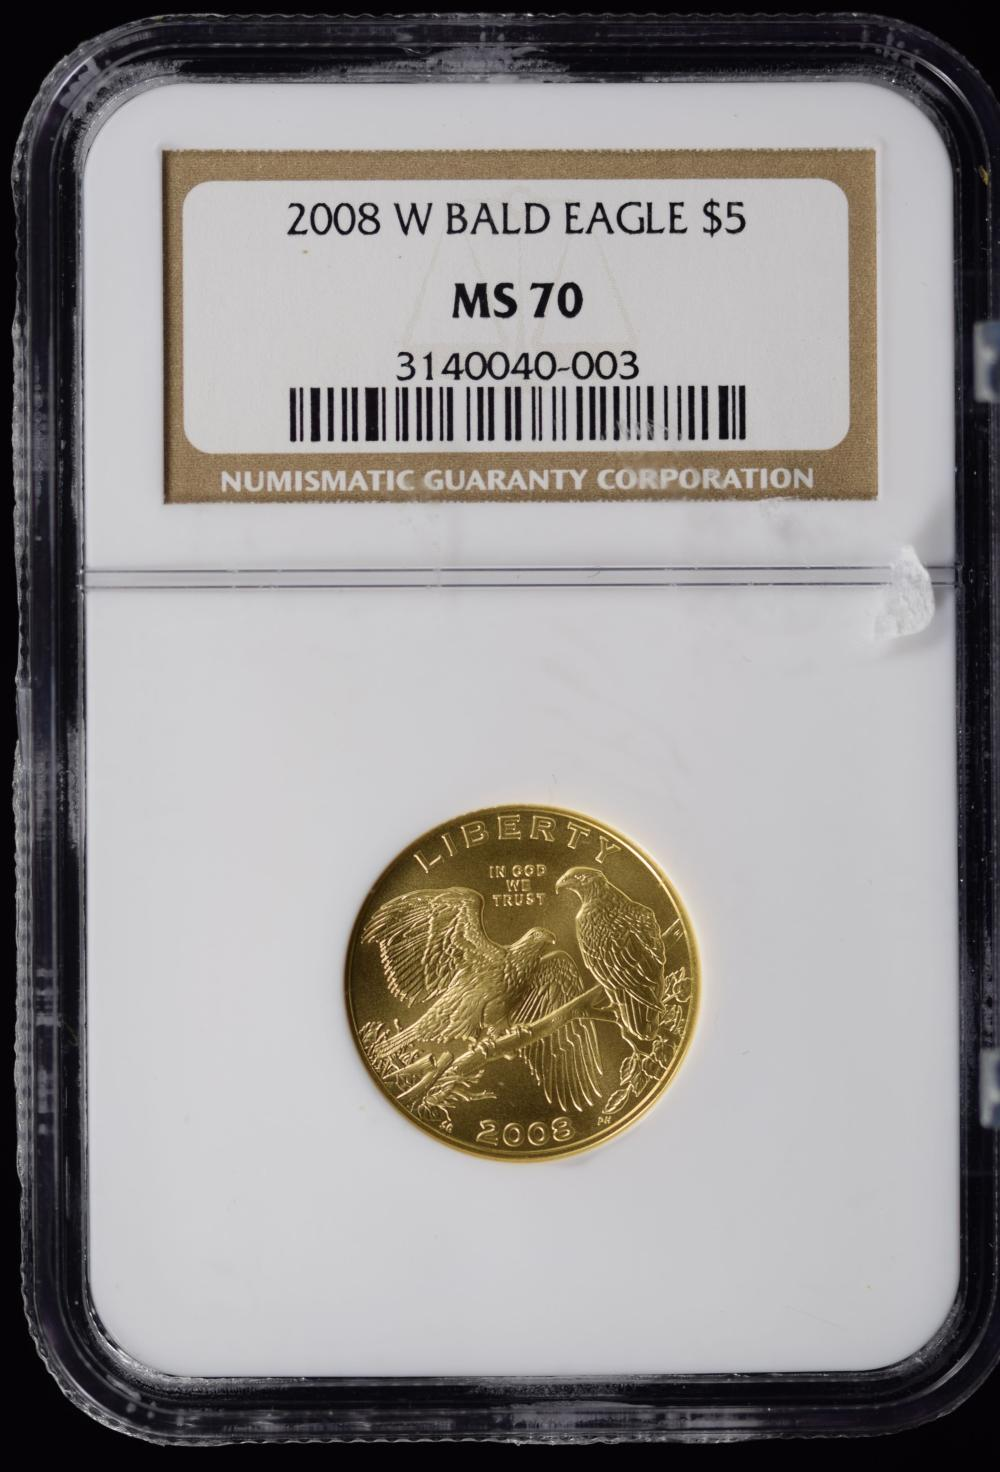 2008-W $5 Gold Bald Eagle NGC MS-70